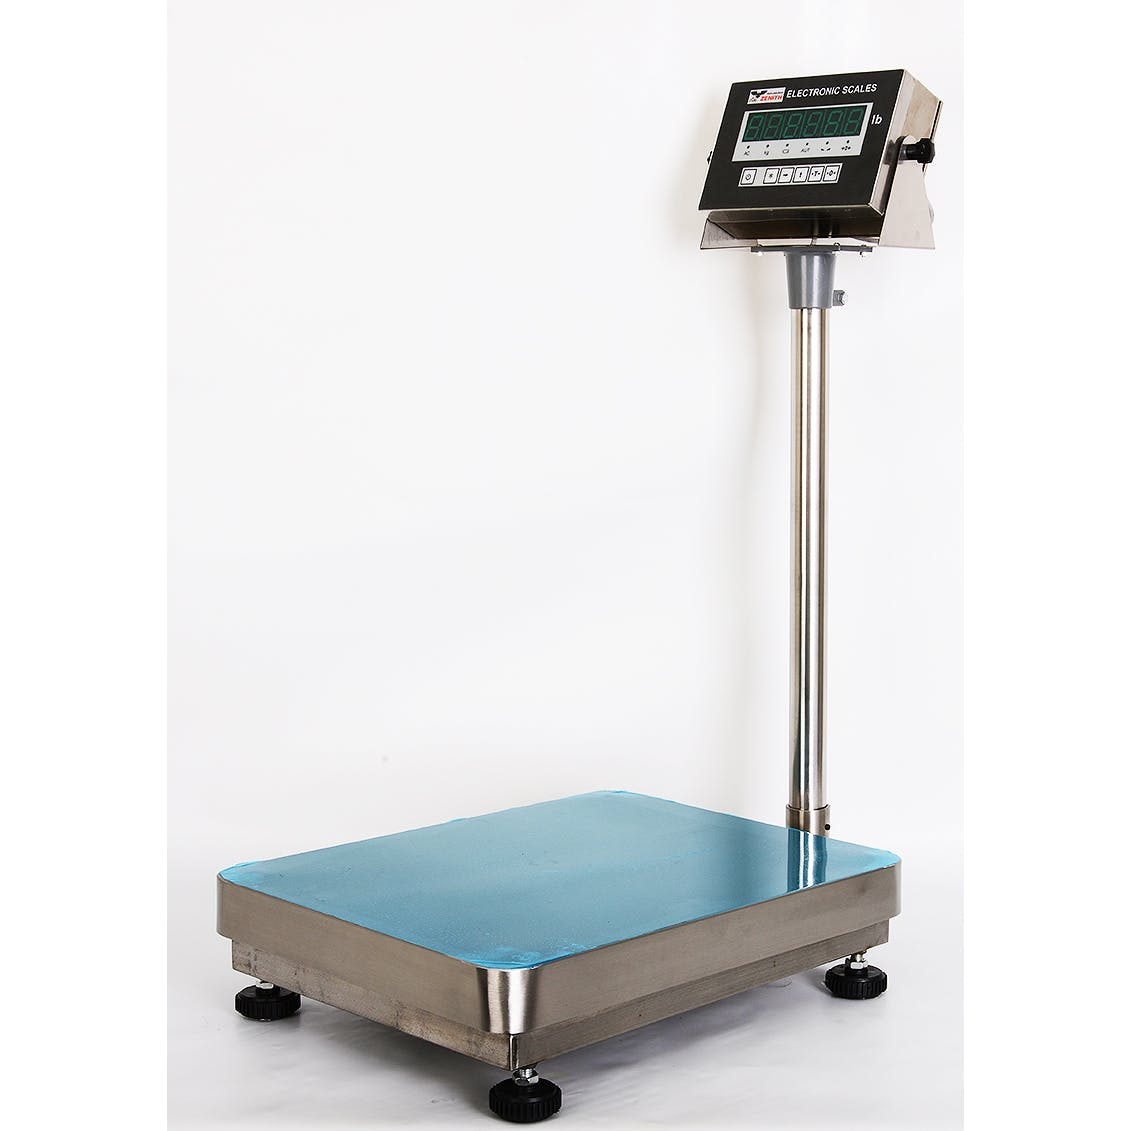 Zenith Z-B-SS-1620 304 Stainless Steel Wash Down Bench Scale - sold by Meilestone